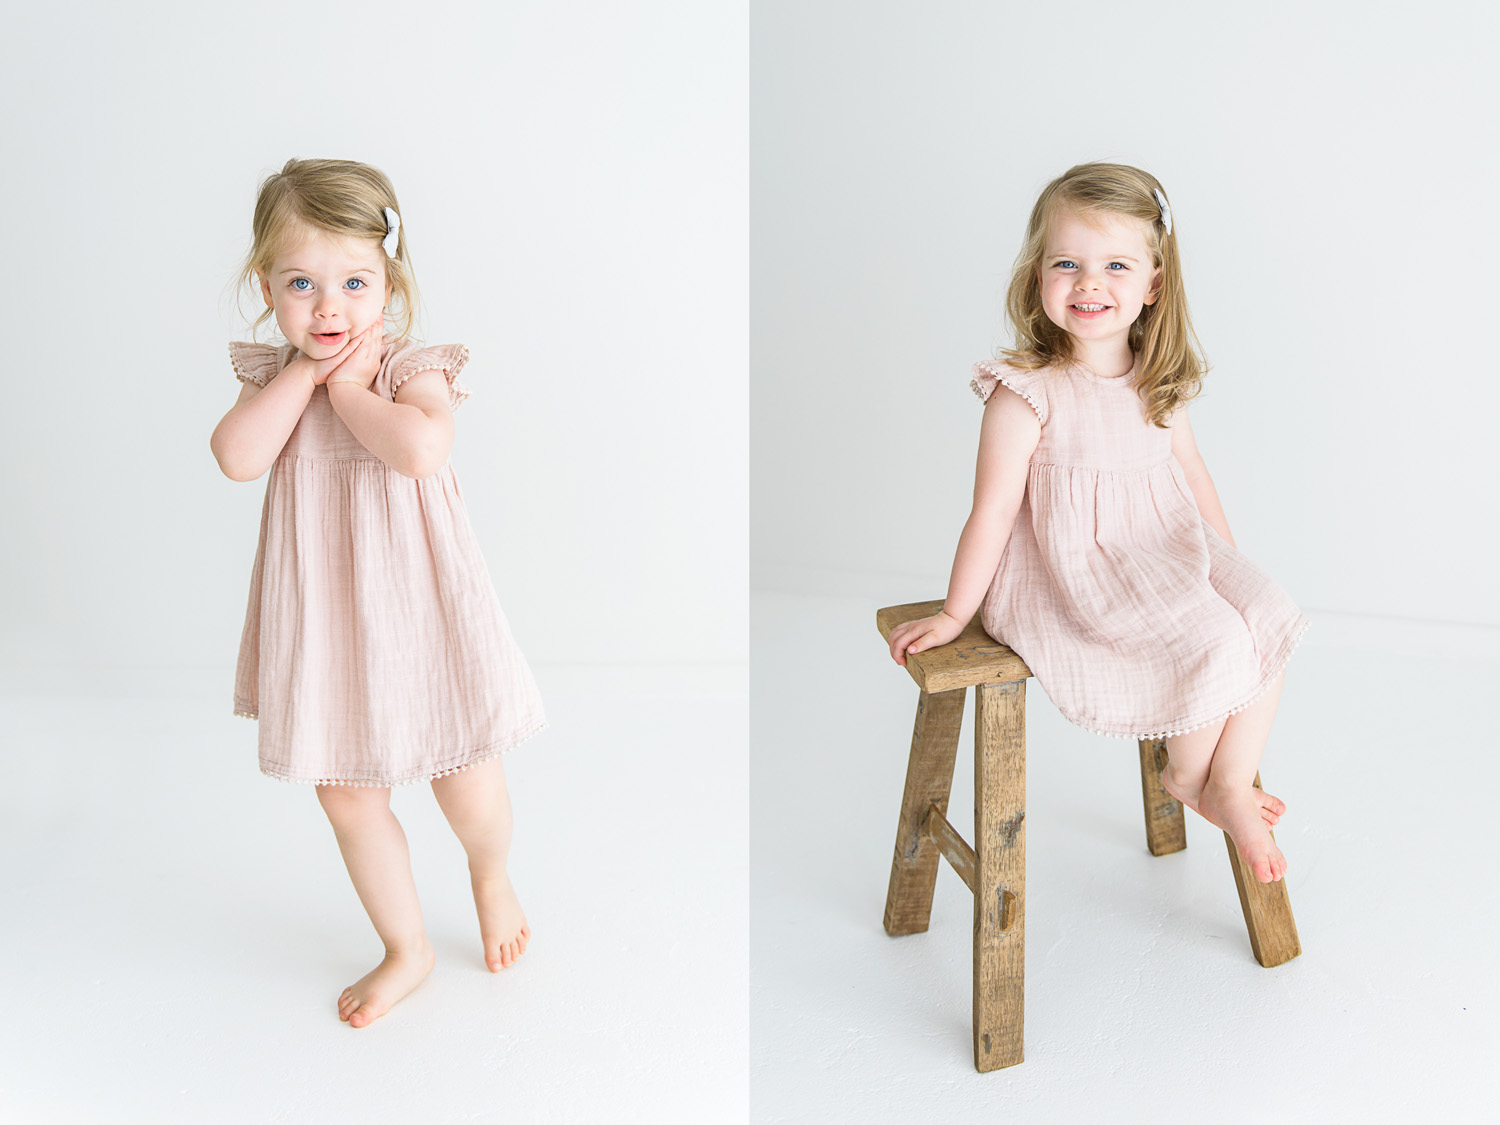 Two images side by side. First image of young girl standing and smiling sweetly at camera, second image of young girl sitting on wooden seat and grinning widely at camera during sutherland shire baby photography session in Sevenish Photography Studio